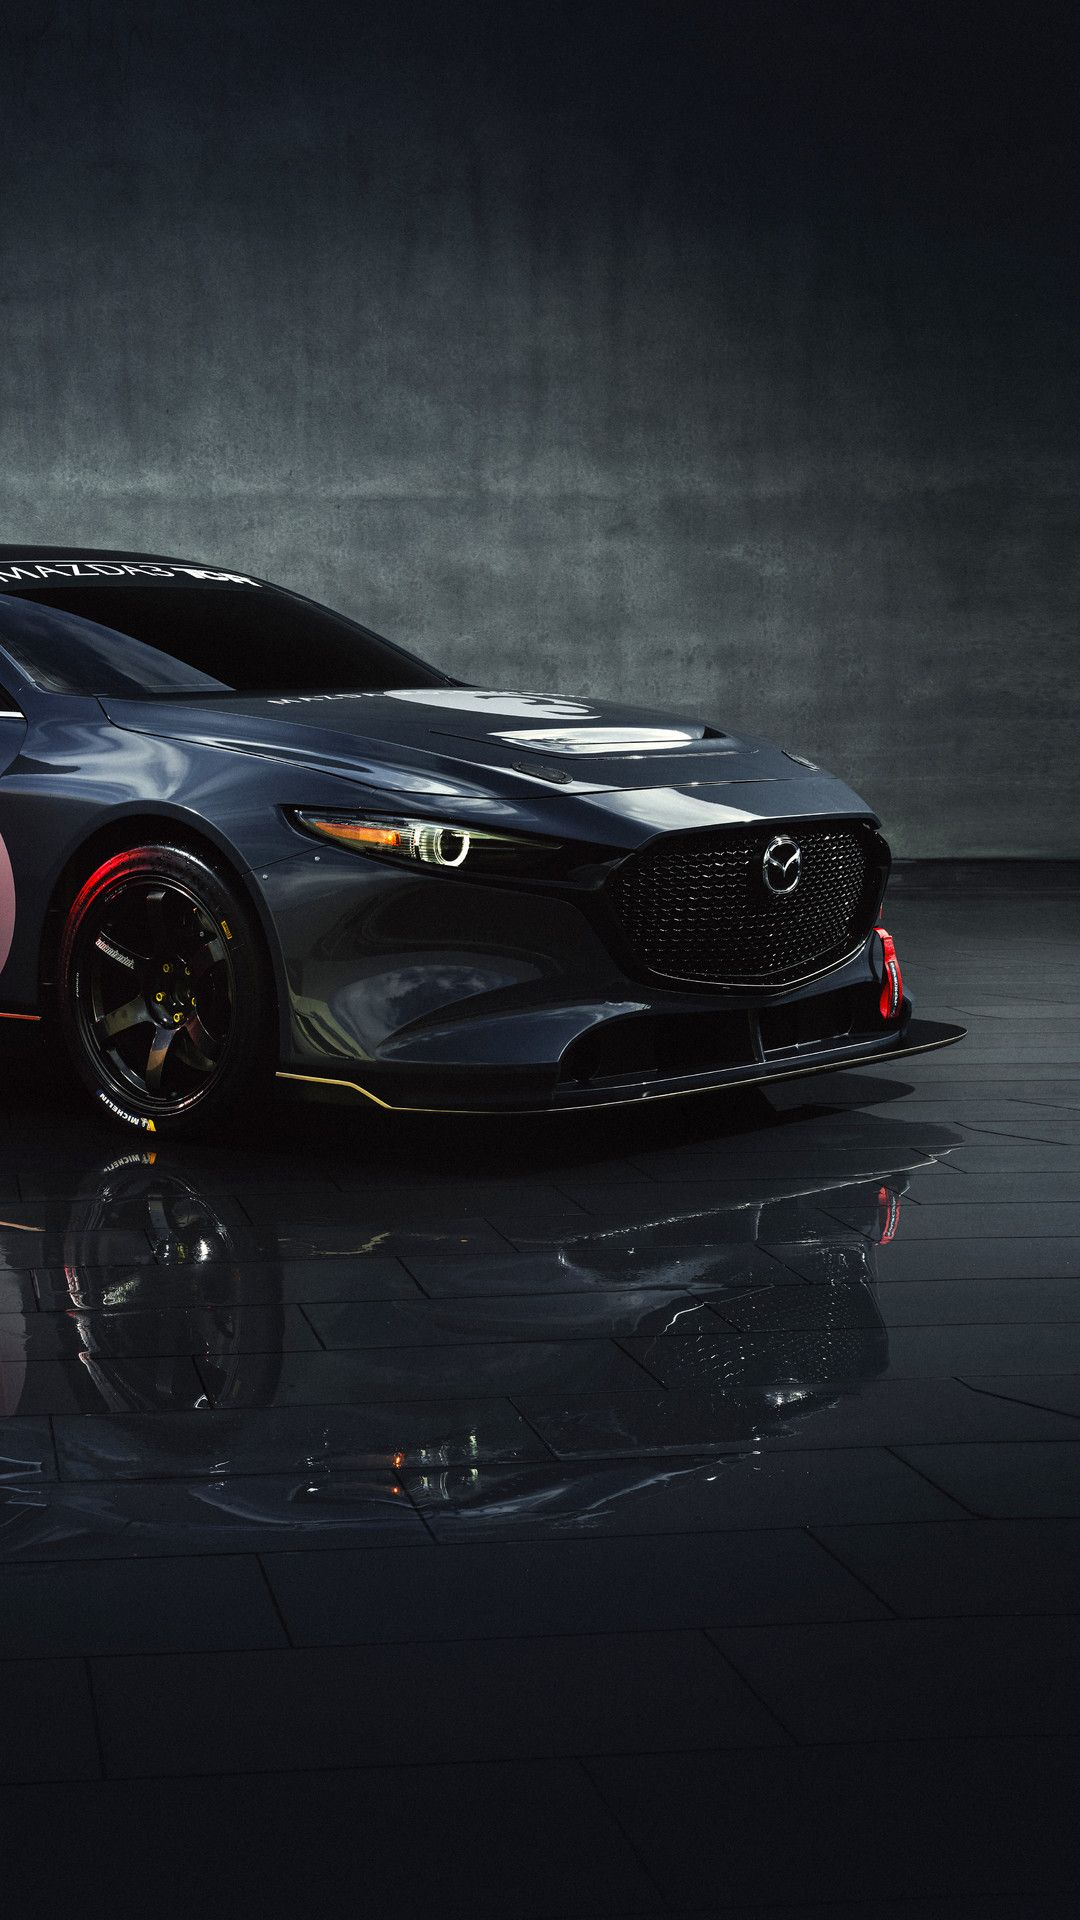 Mazda3 Tcr 2019 8k Mobile Wallpaper Iphone Android Samsung Pixel Xiaomi Mobile Wallpaper Wallpaper Iphone